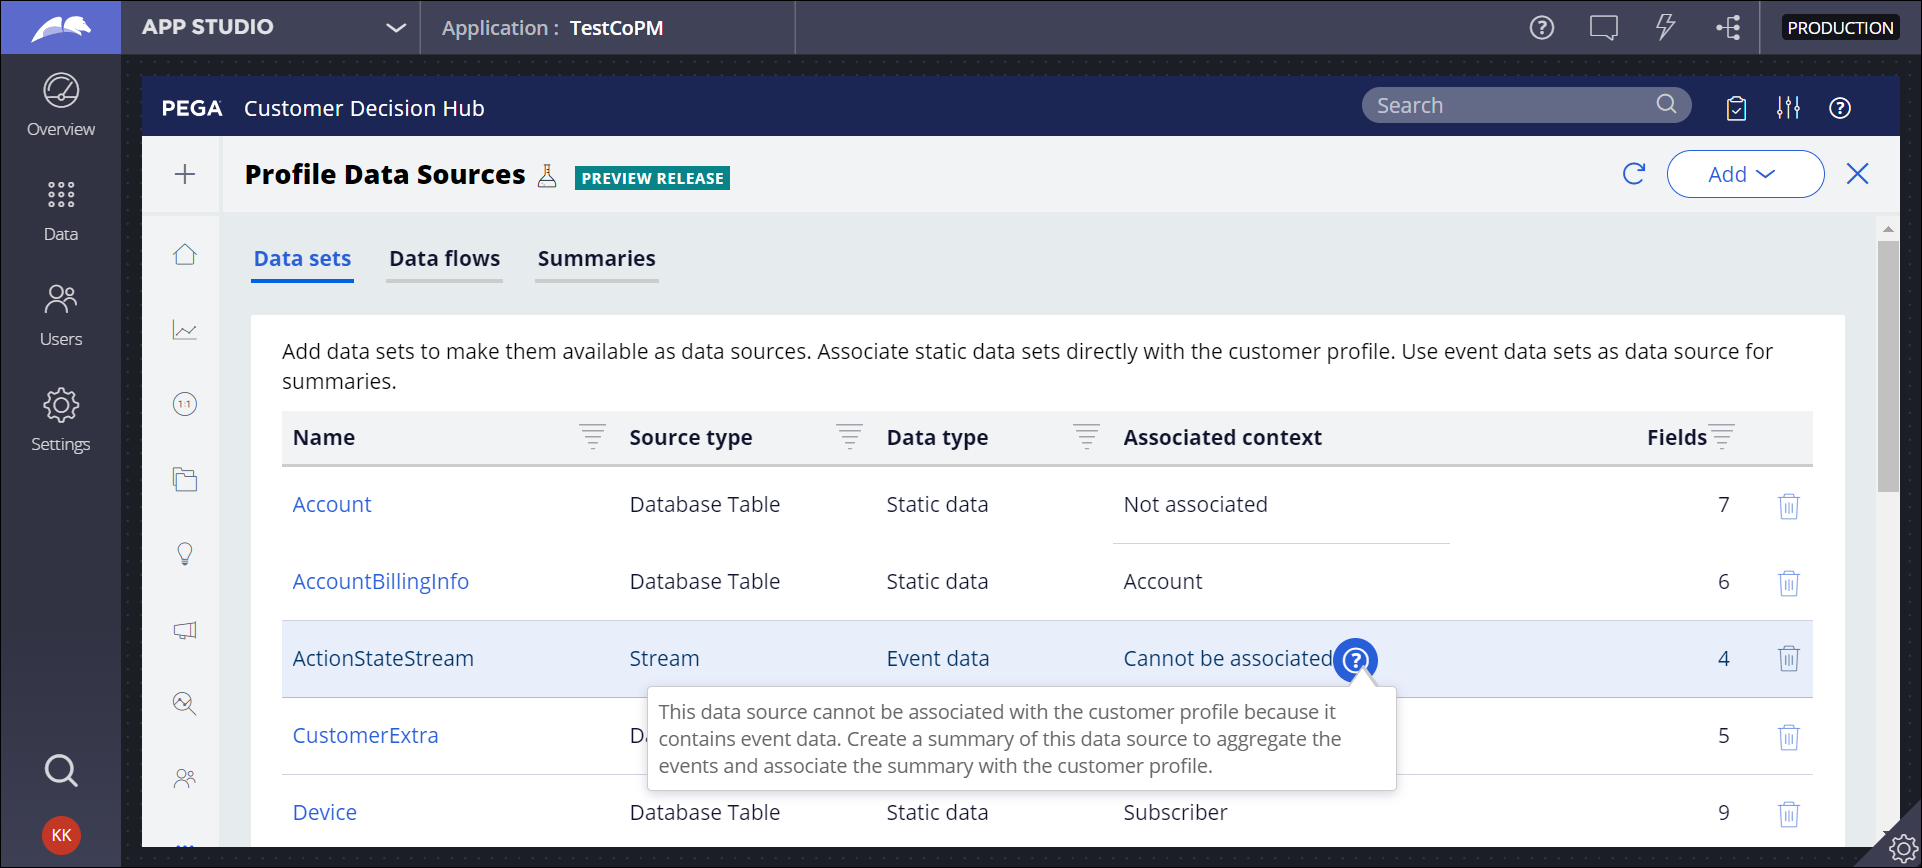 Customer Profile Designer prompts the user to create a summary for event data